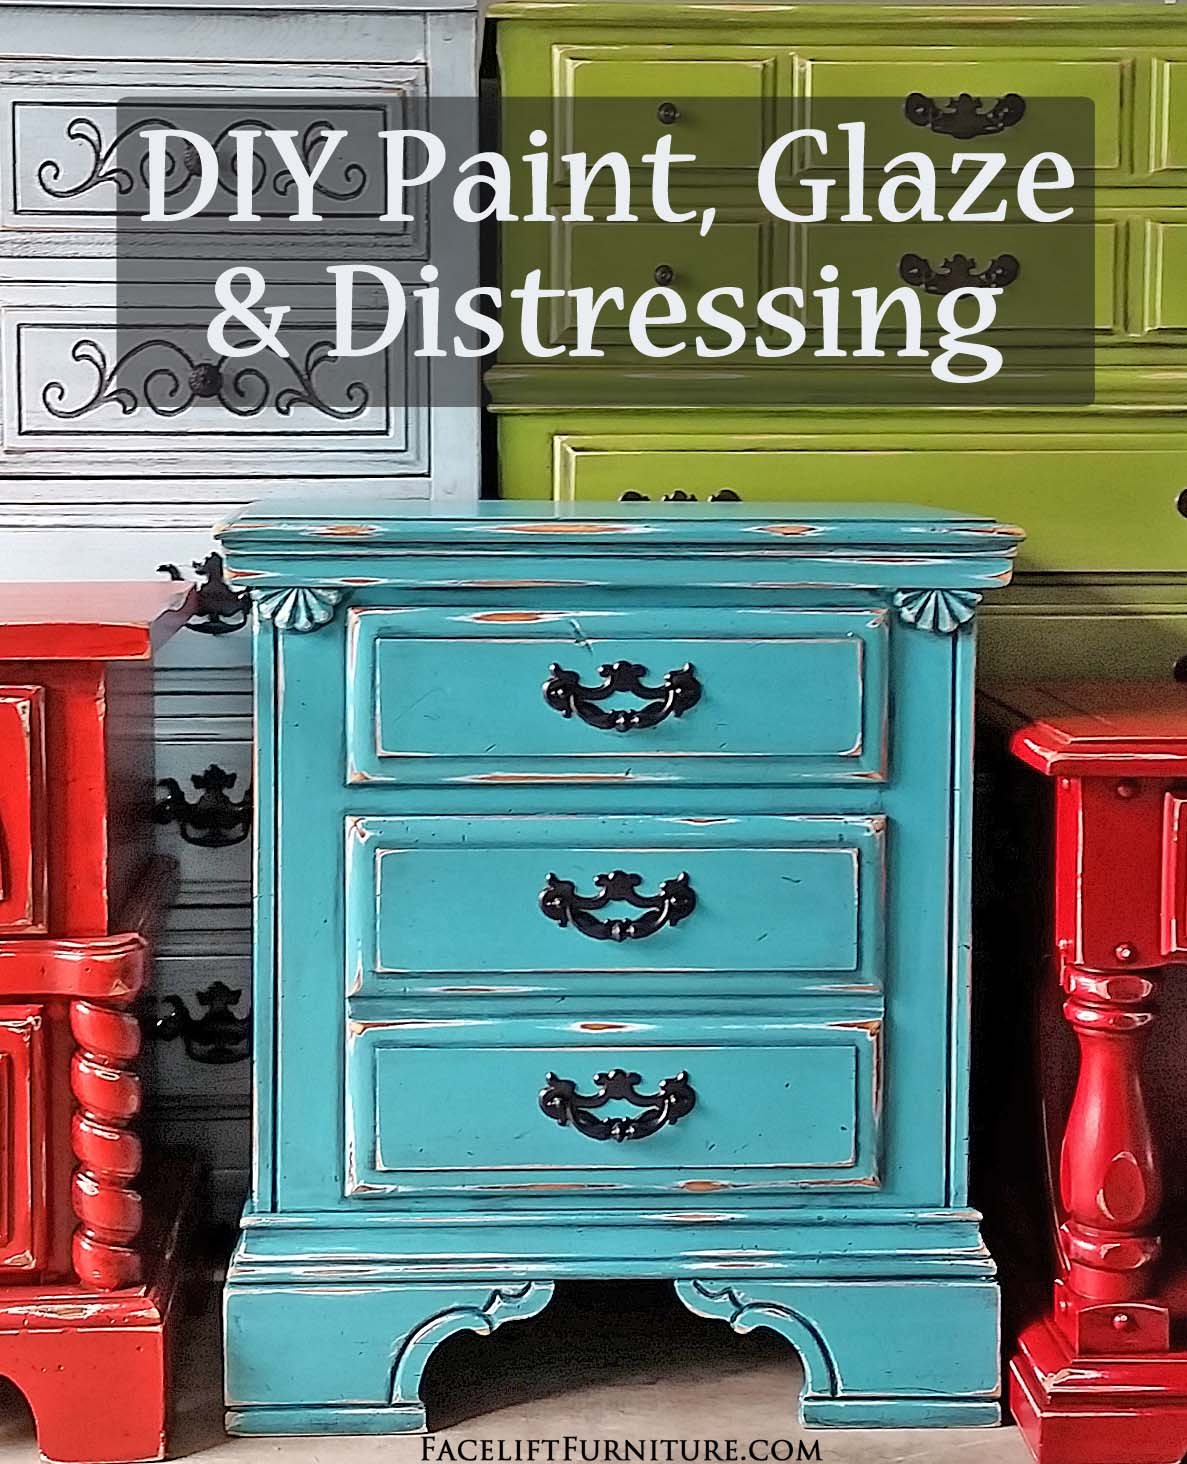 DIY Paint, Glaze & Distressing - Ideas & Inspiration from Facelift Furniture